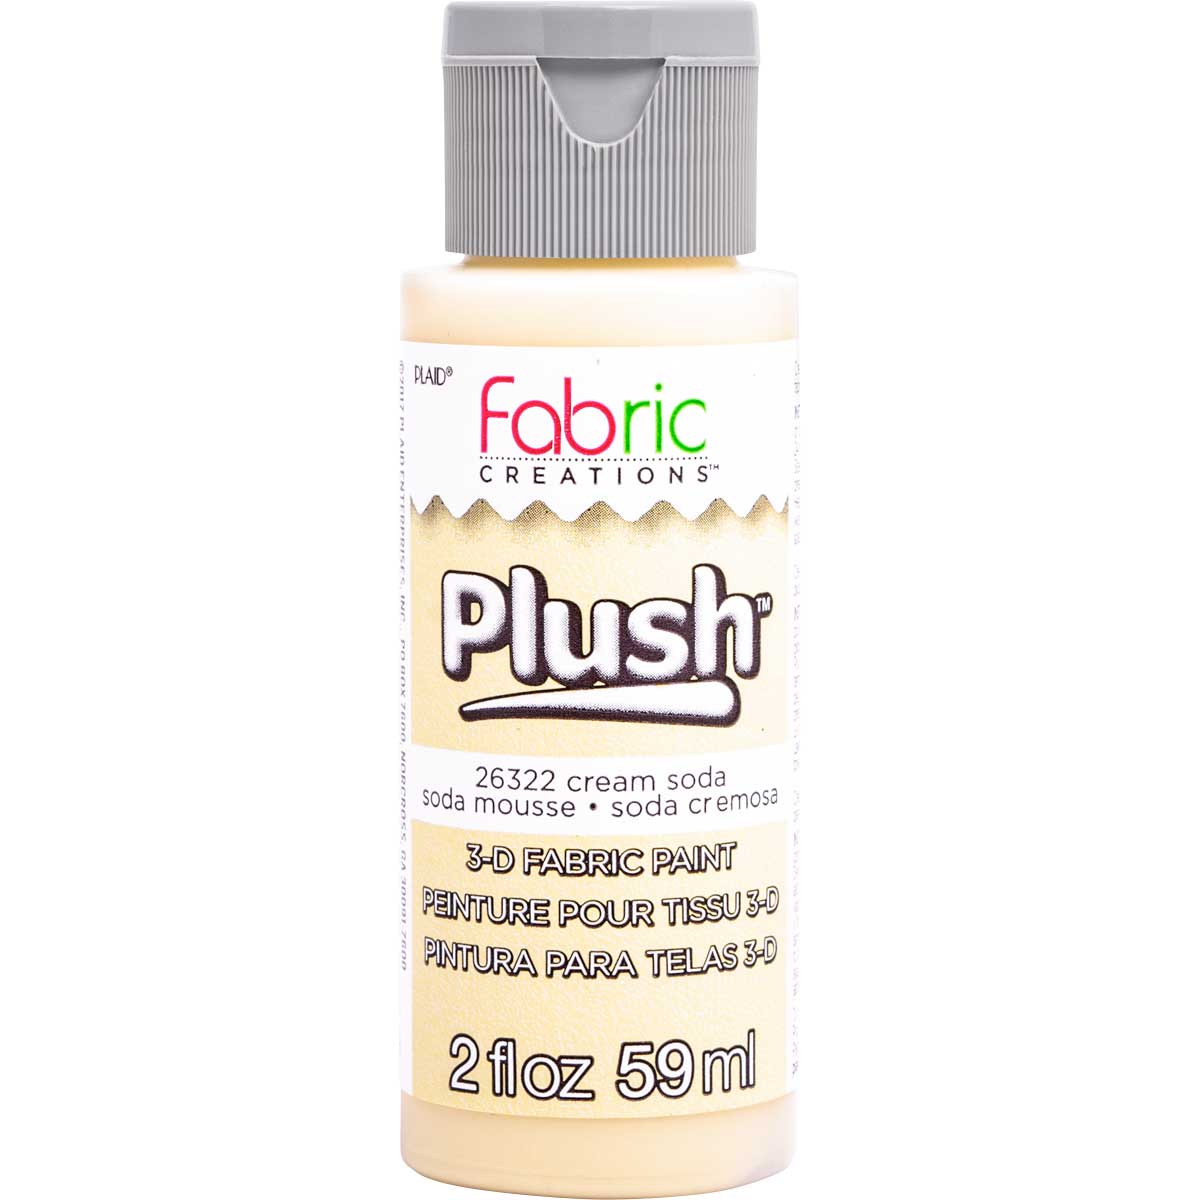 Fabric Creations™ Plush™ 3-D Fabric Paints - Cream Soda, 2 oz. - 26322